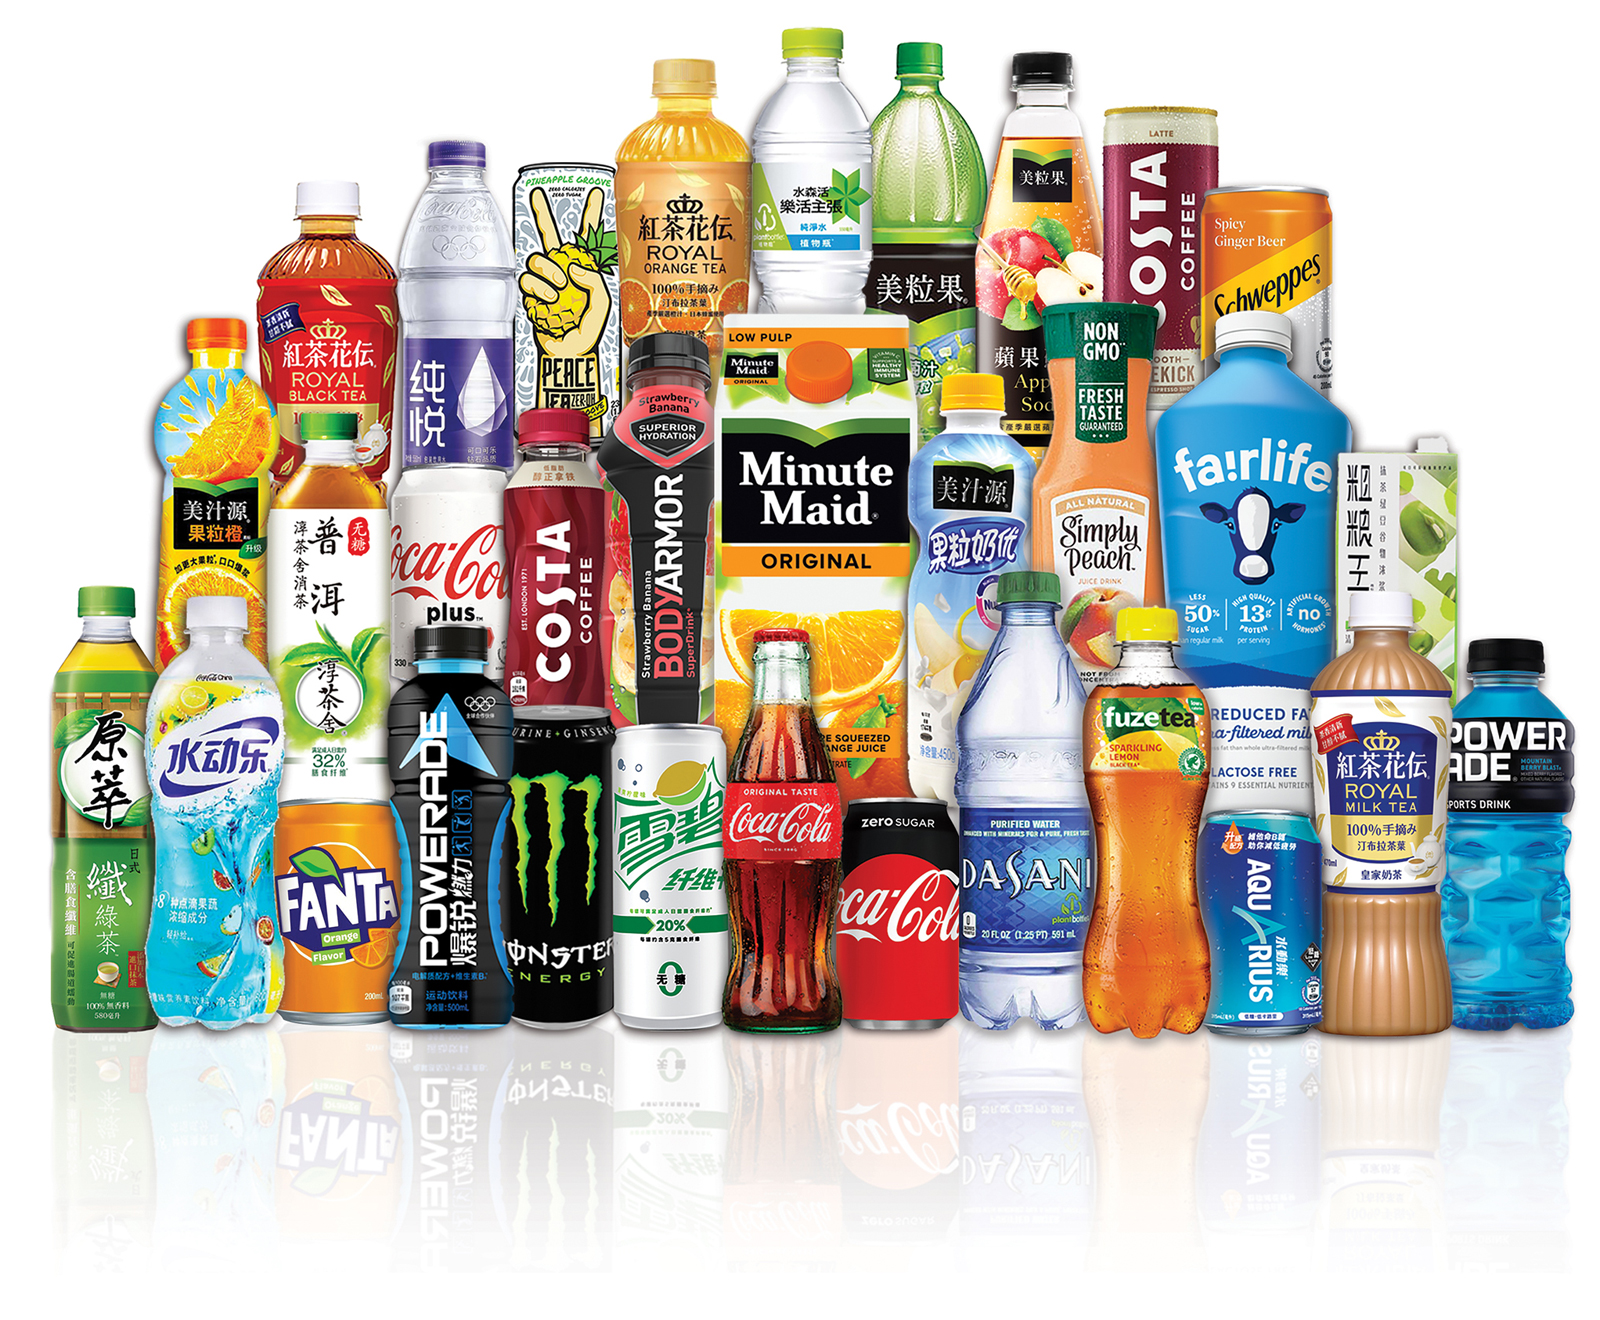 Swire Coca-Cola offers an extensive portfolio of beverage products.